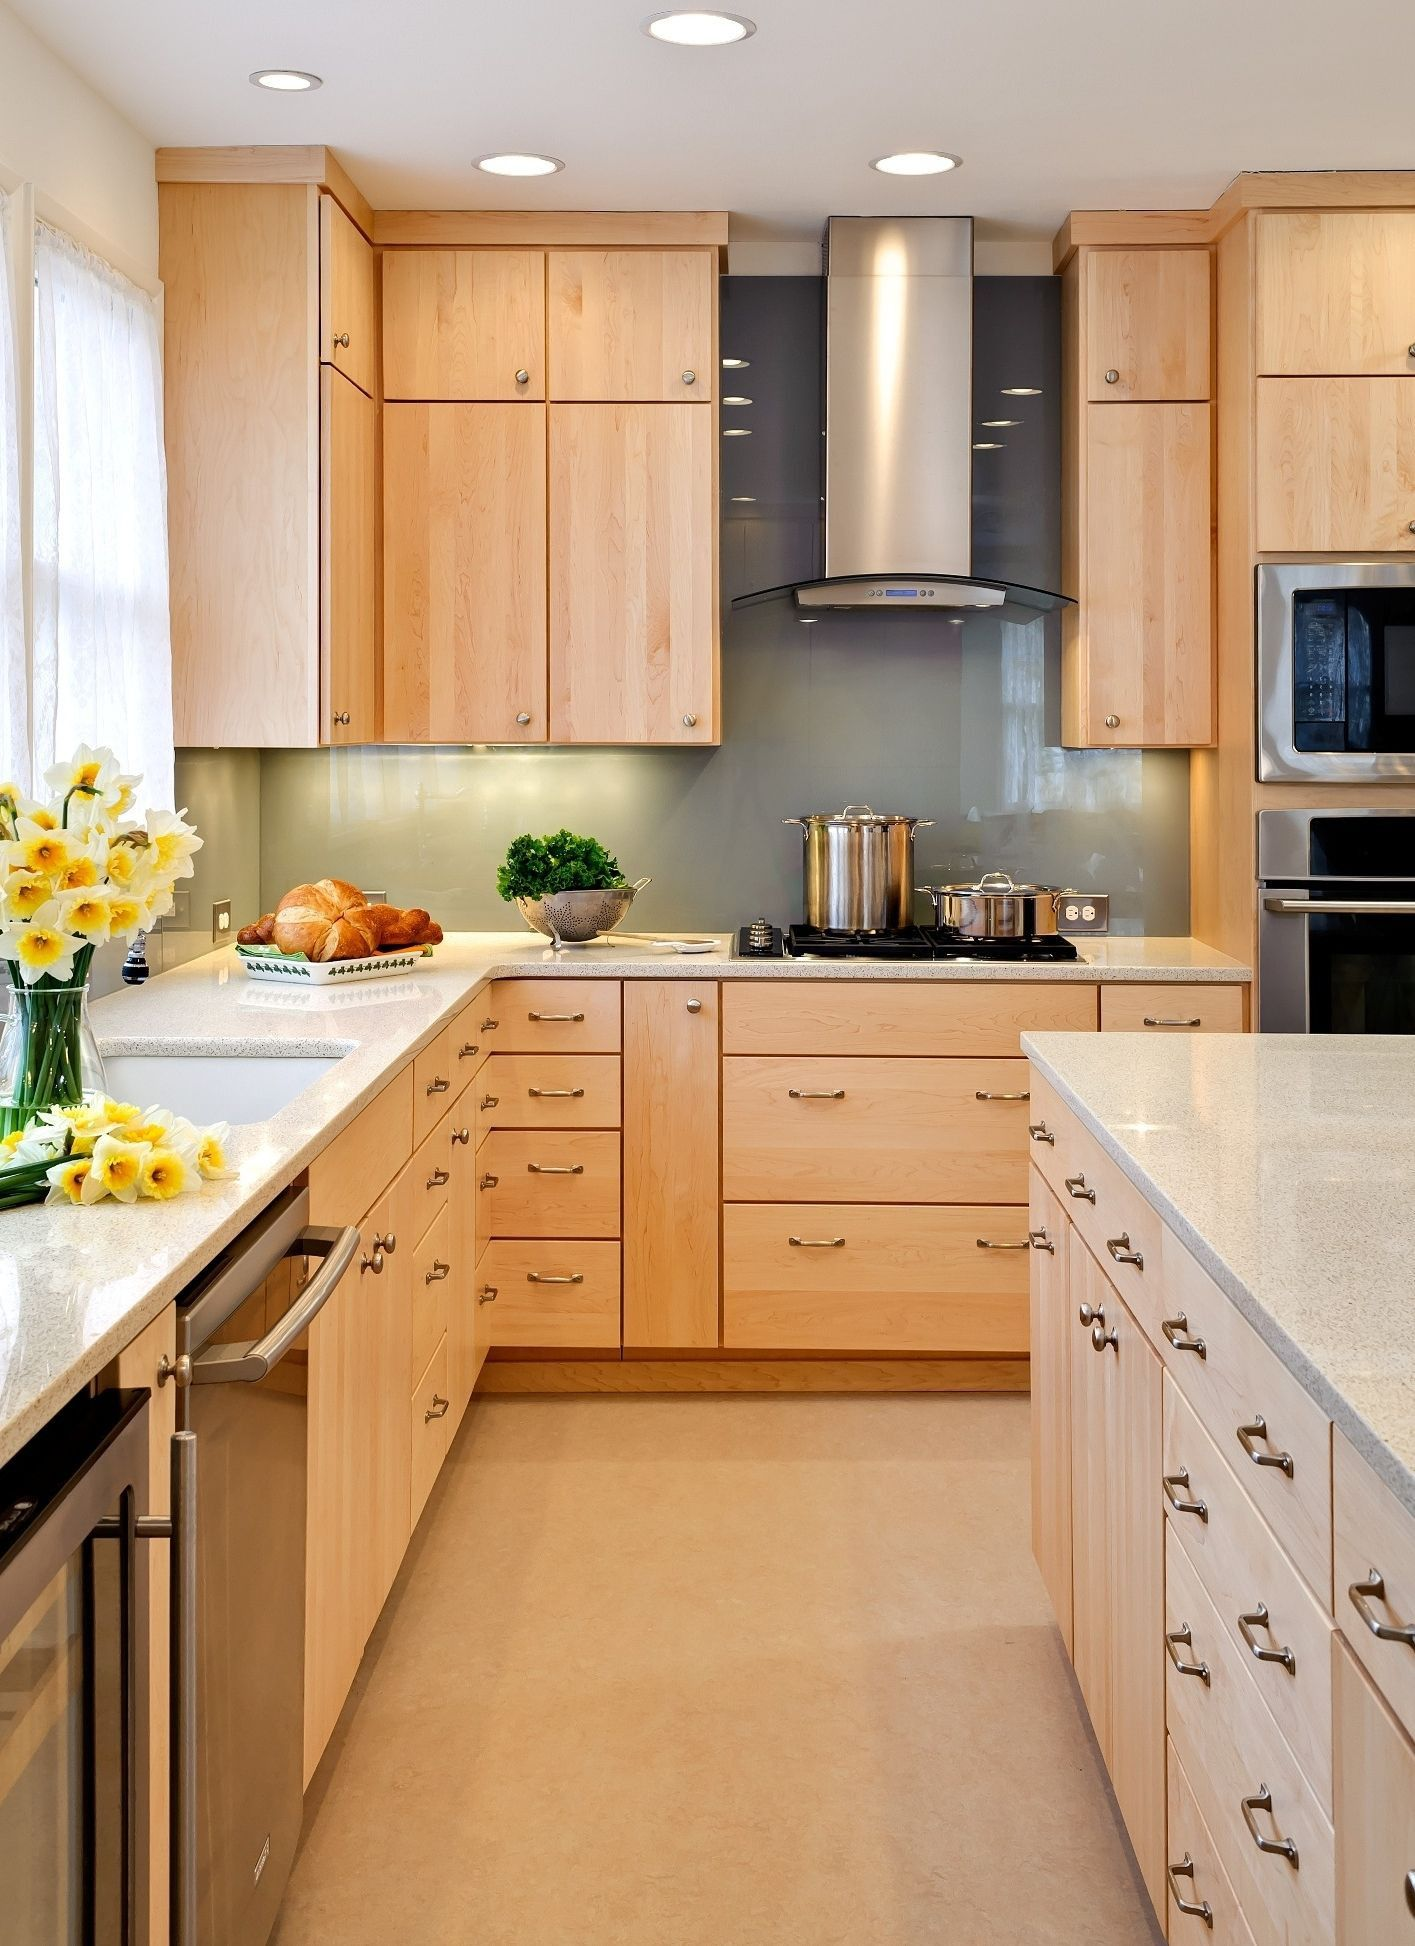 Maple Flat Front Cabinets Modern Birch Kitchen Cabinets Maple Kitchen Cabinets Kitchen Cabinets And Countertops